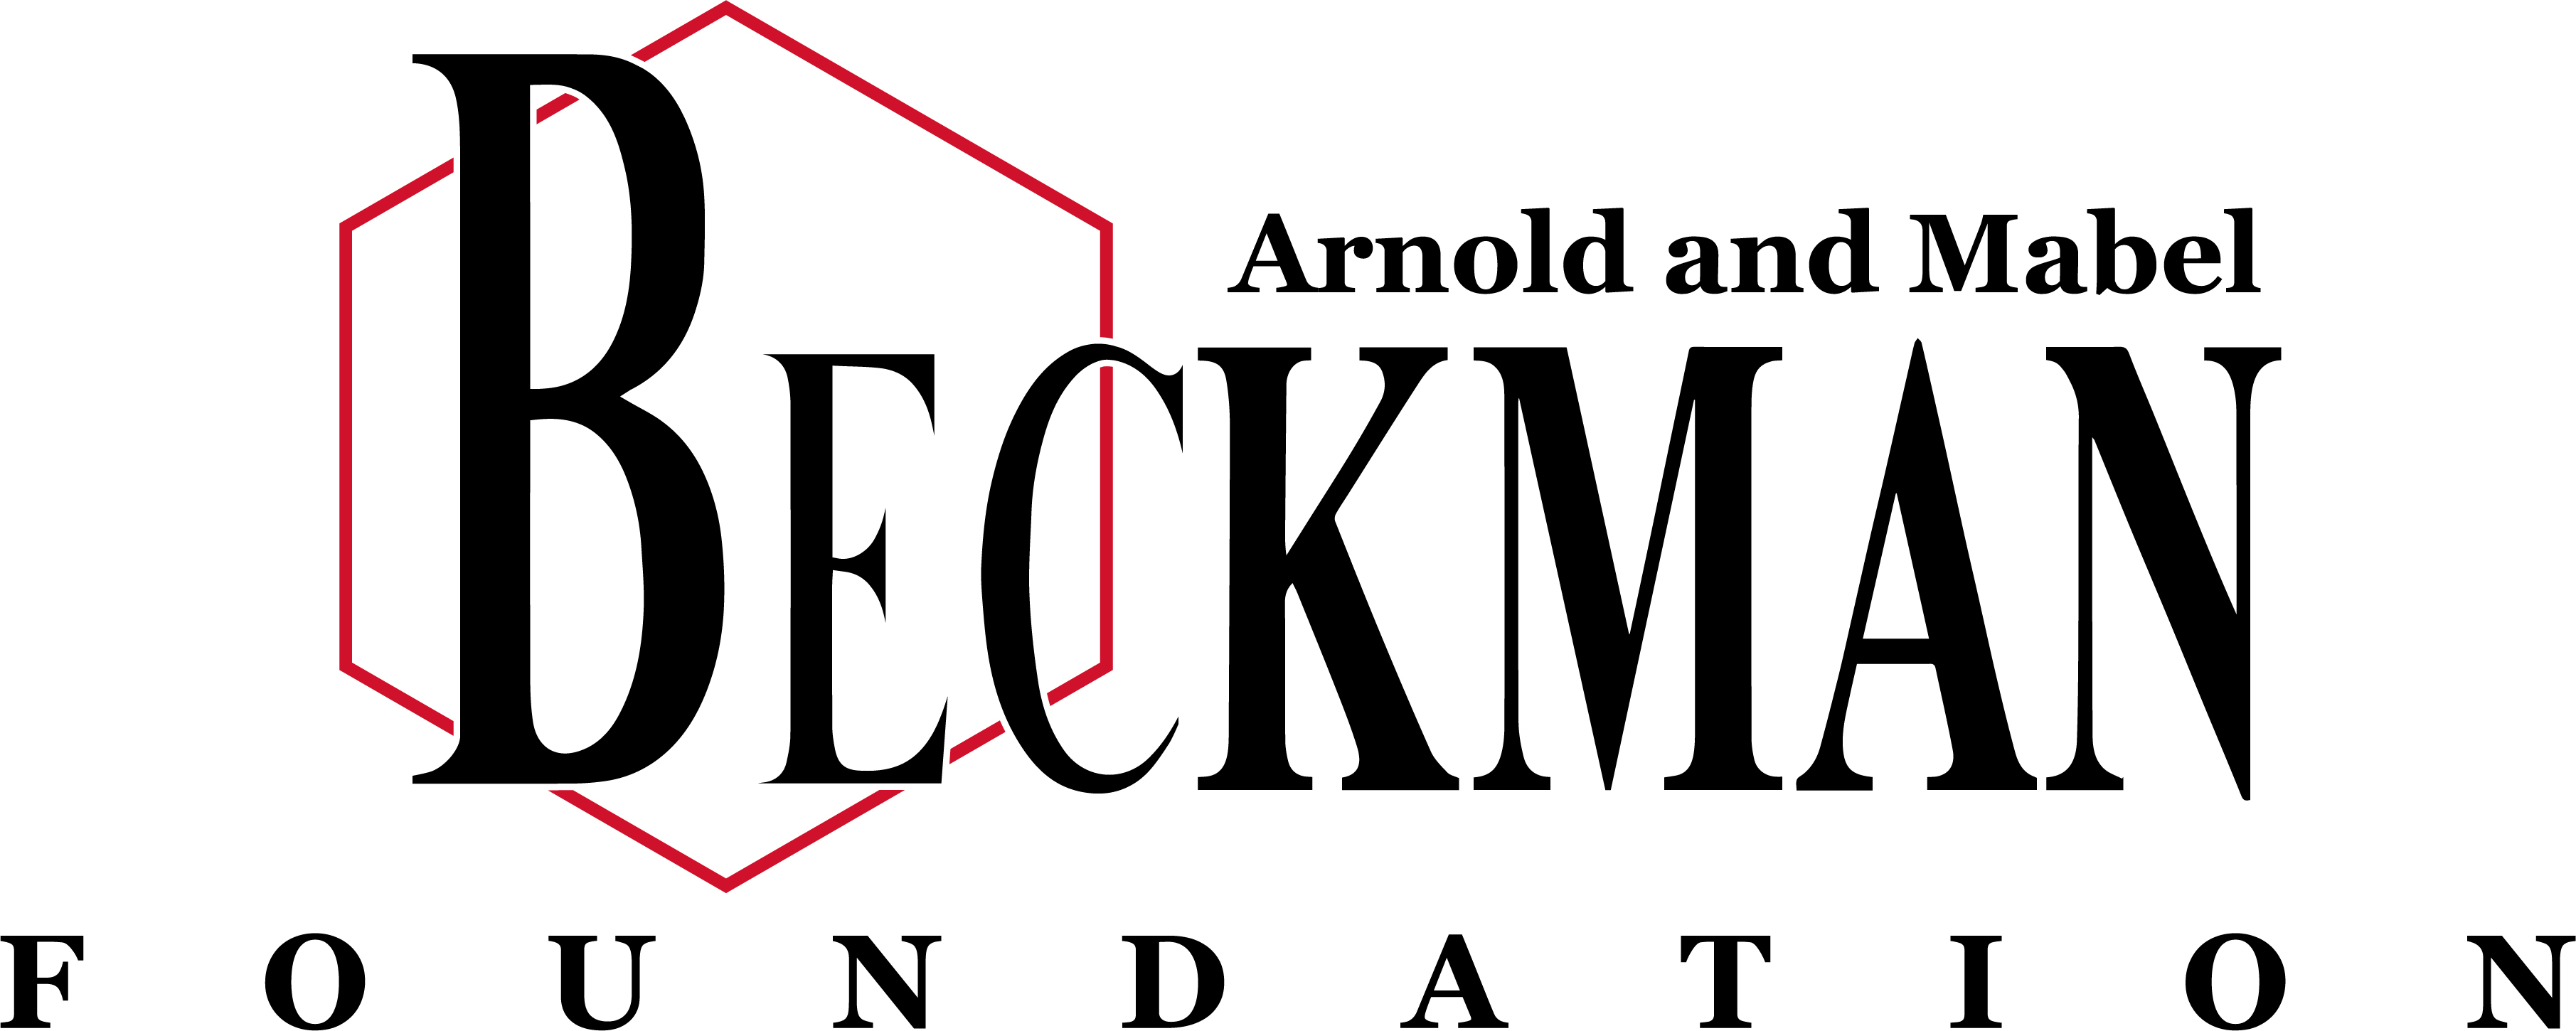 Arnold and Mabel Beckman Foundation logo